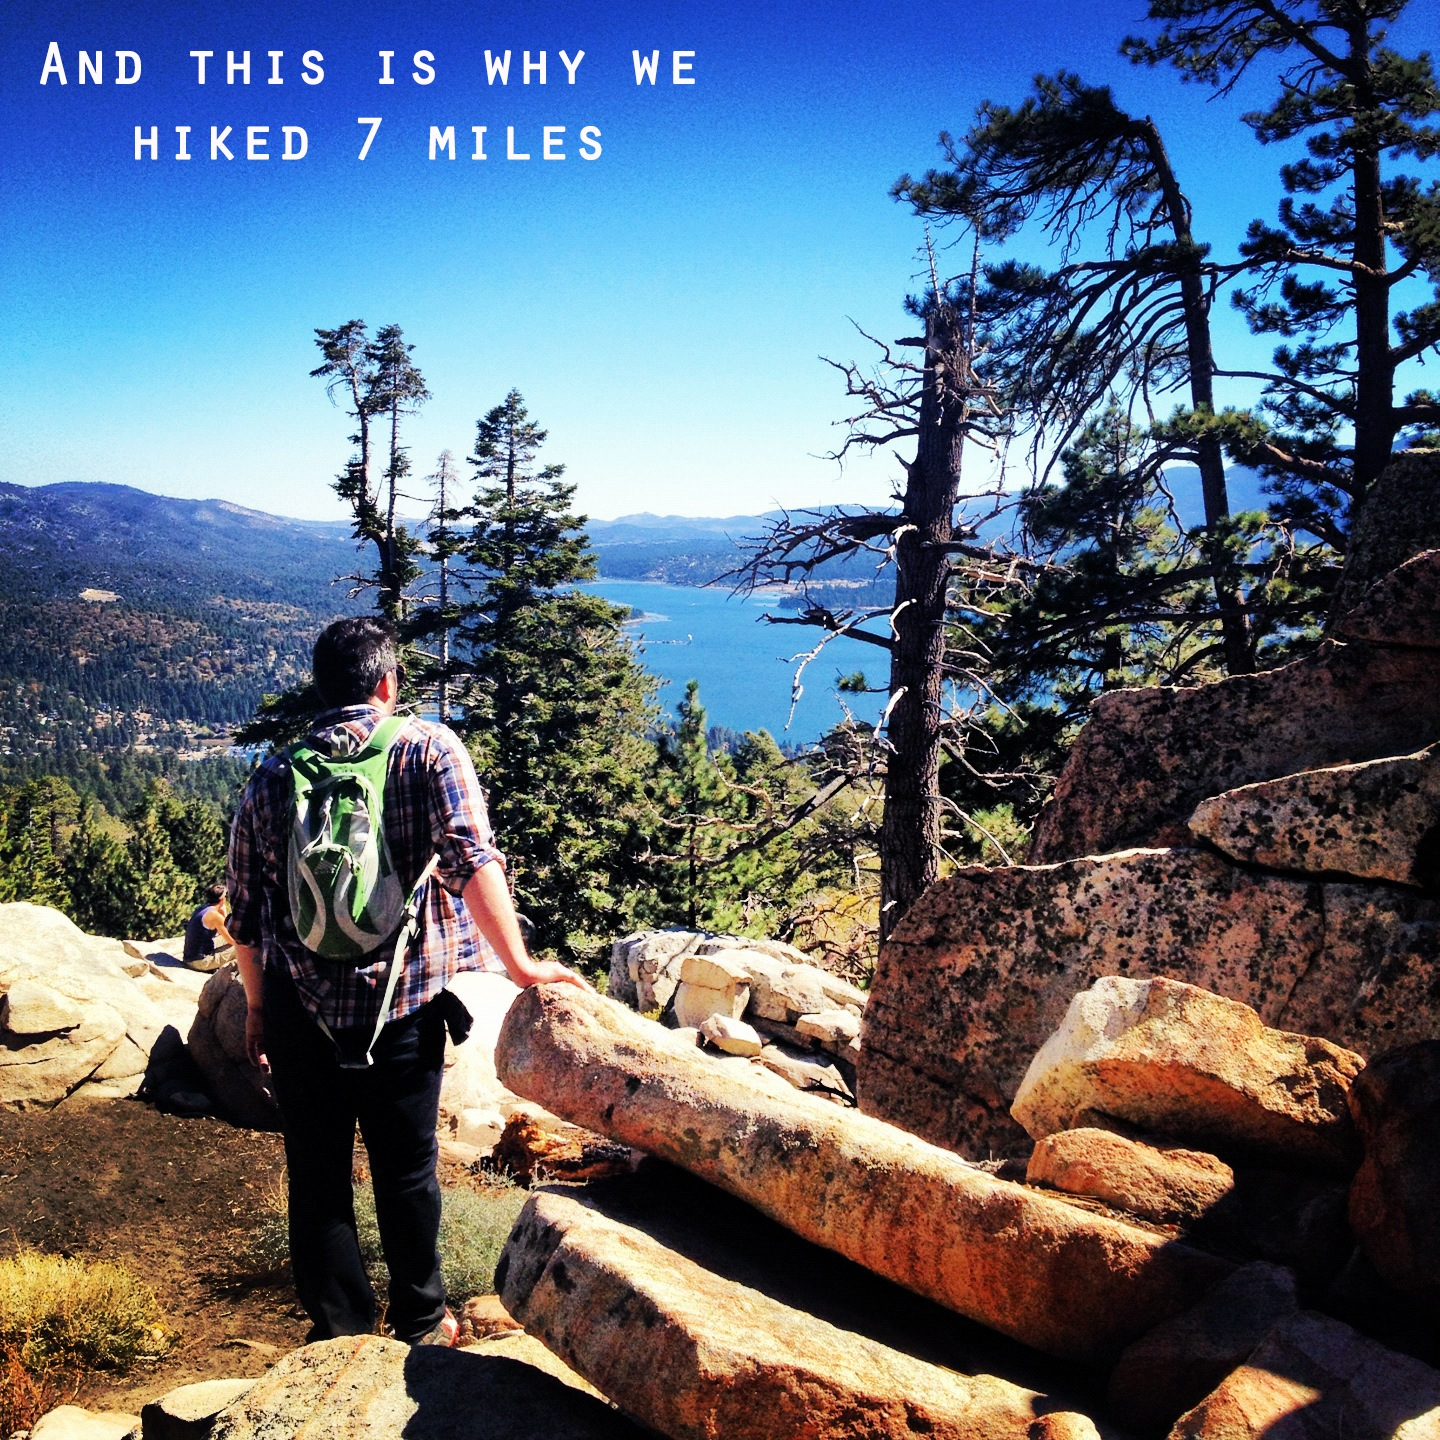 One Day in Big Bear